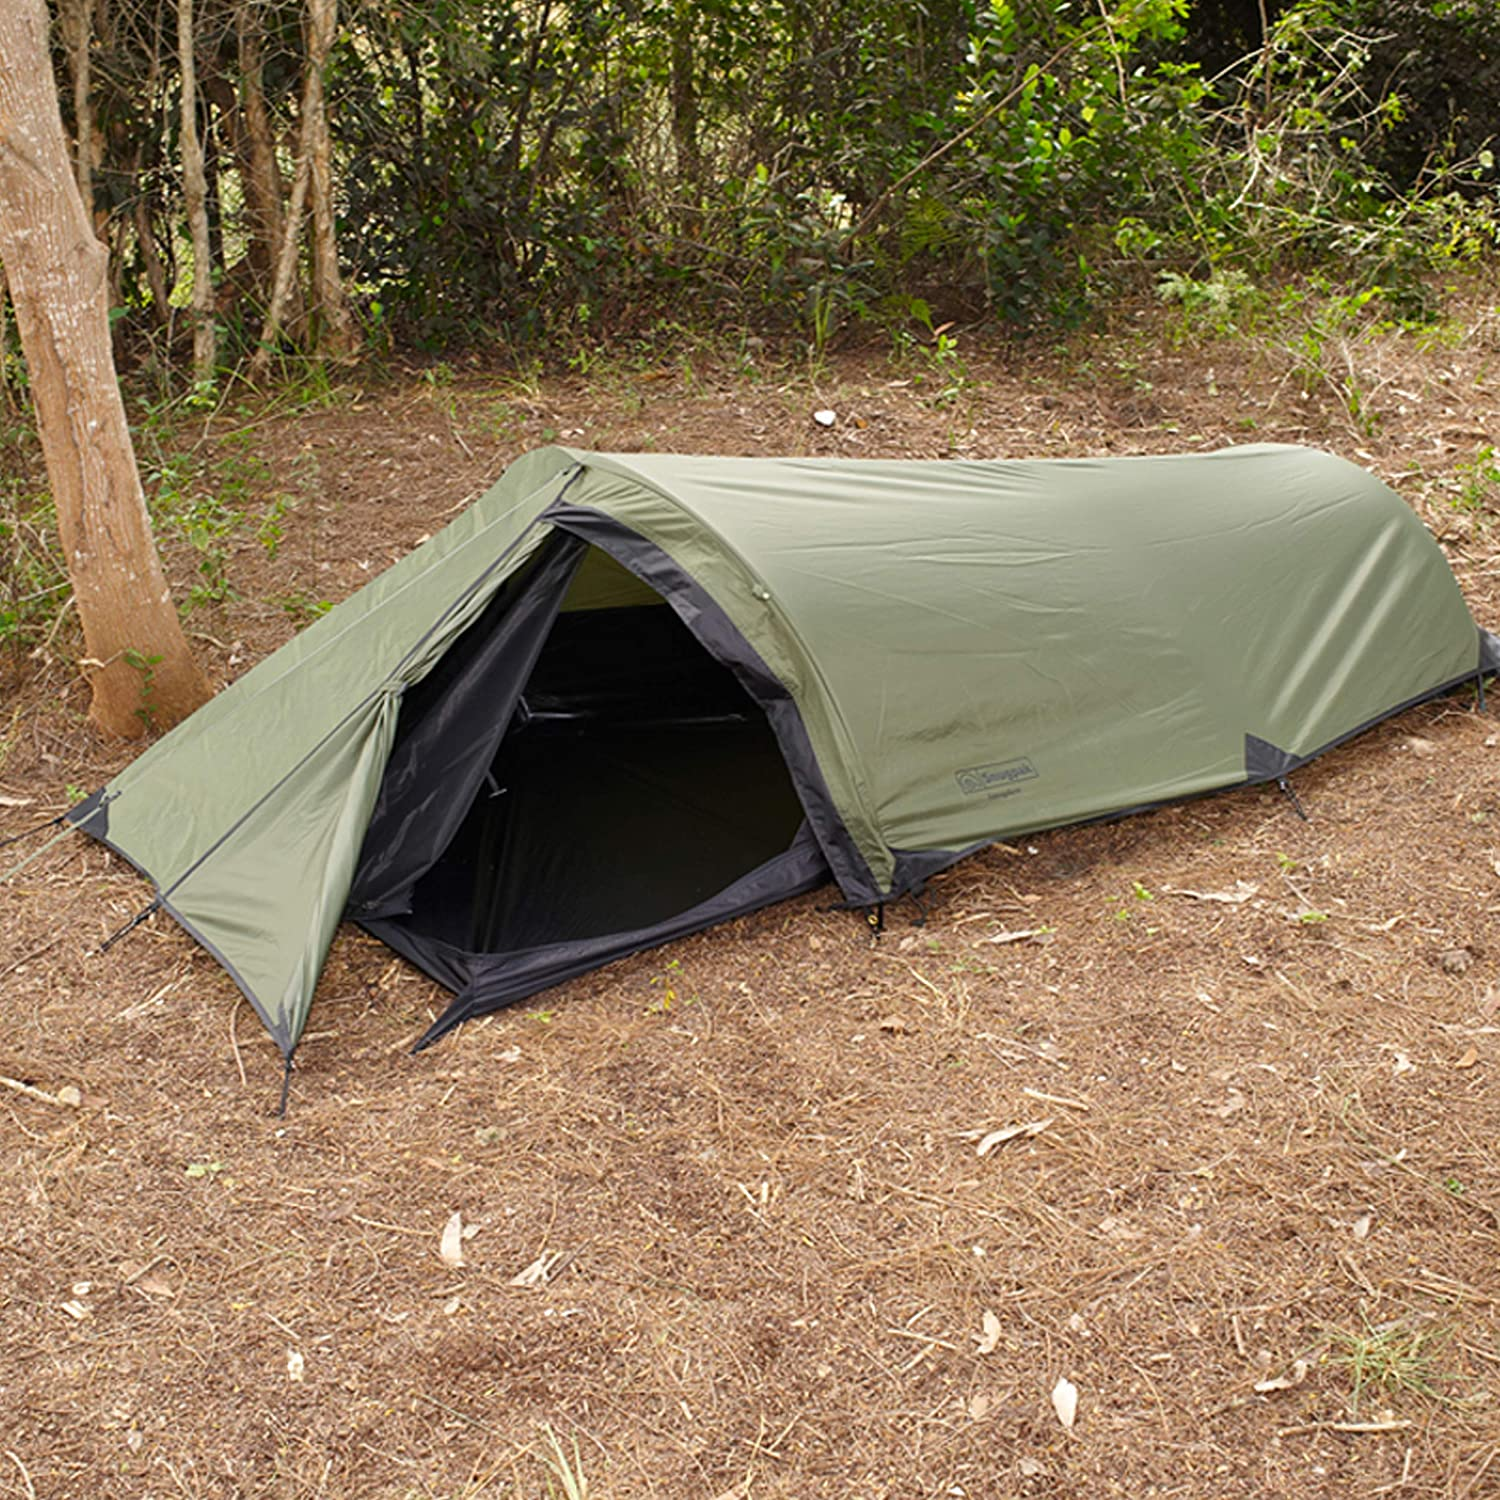 Snugpak The Ionosphere 1 Man Dome Tent 94 x 39 x 28 Nylon